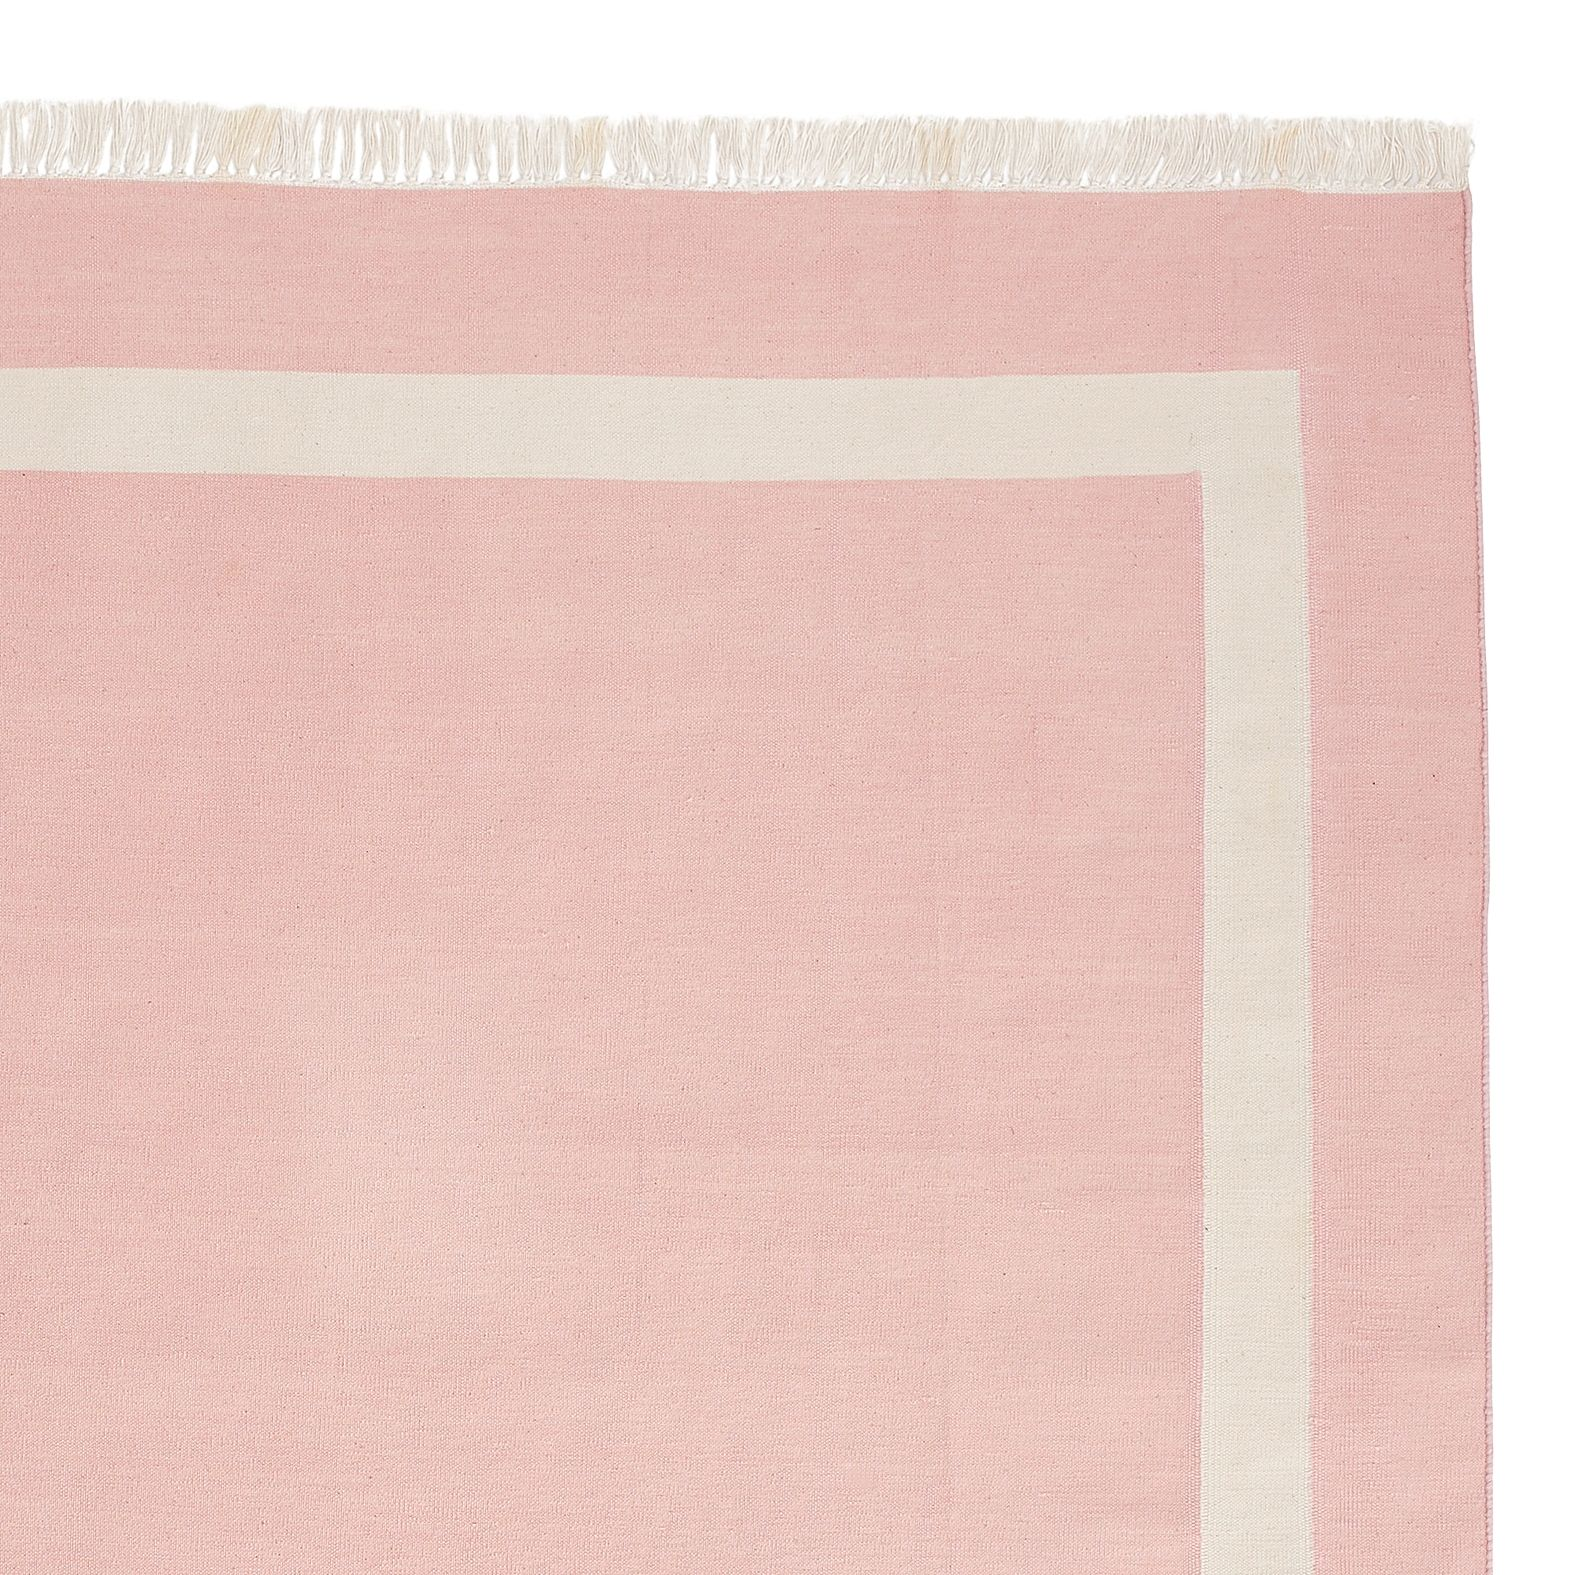 This Blush Colored Rug Would Be Beautiful In A Walk In